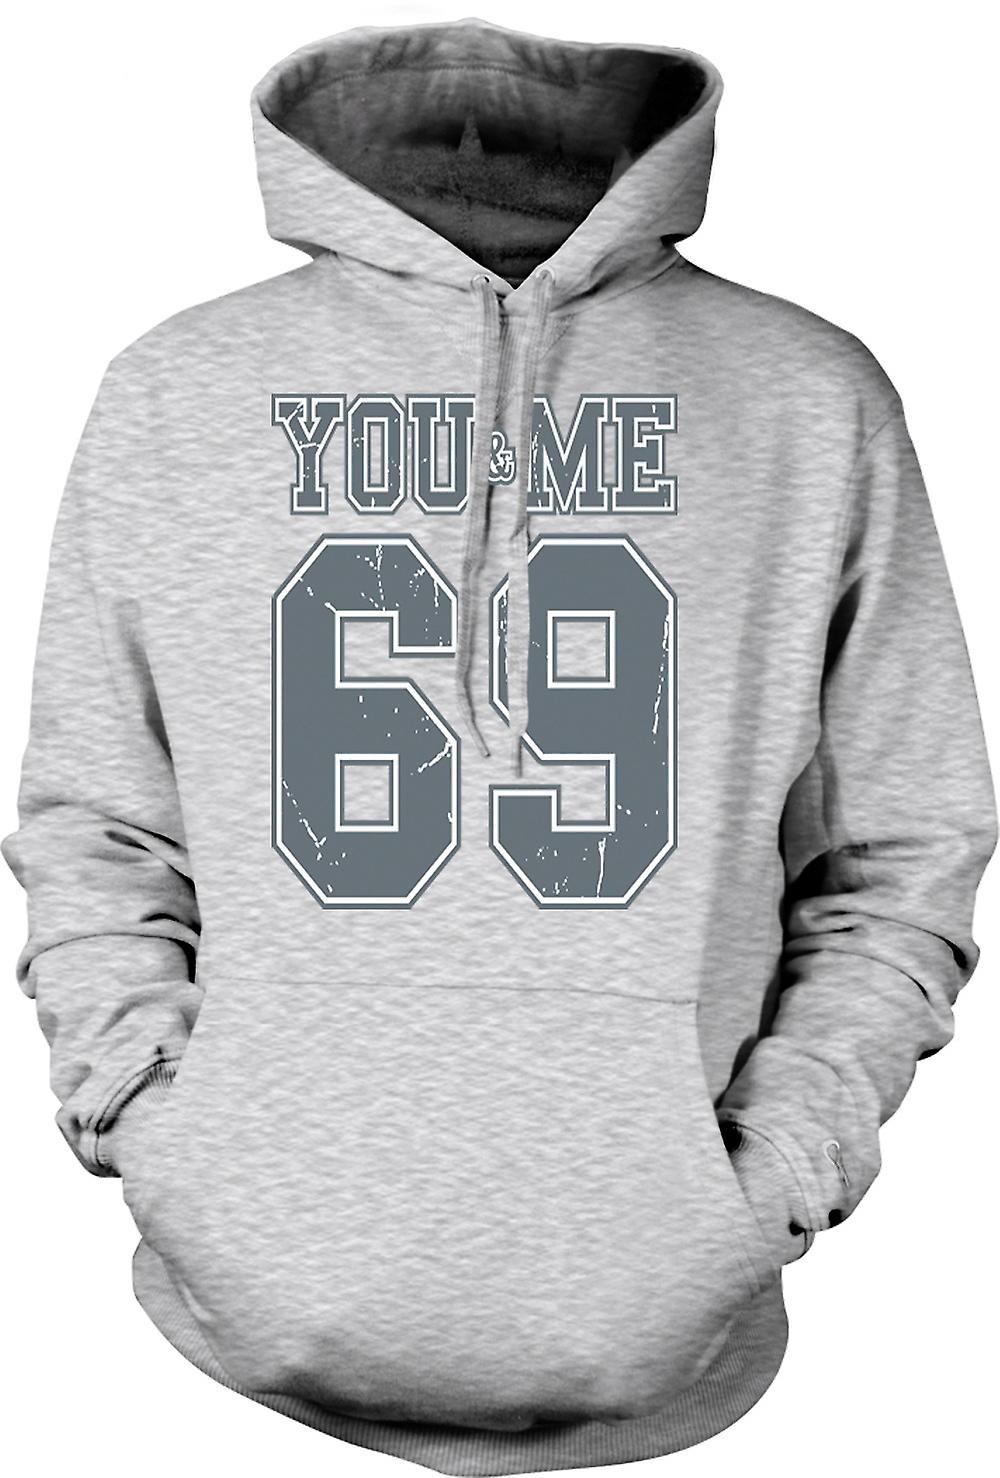 Mens Hoodie - You And Me 69 - College Football - Funny